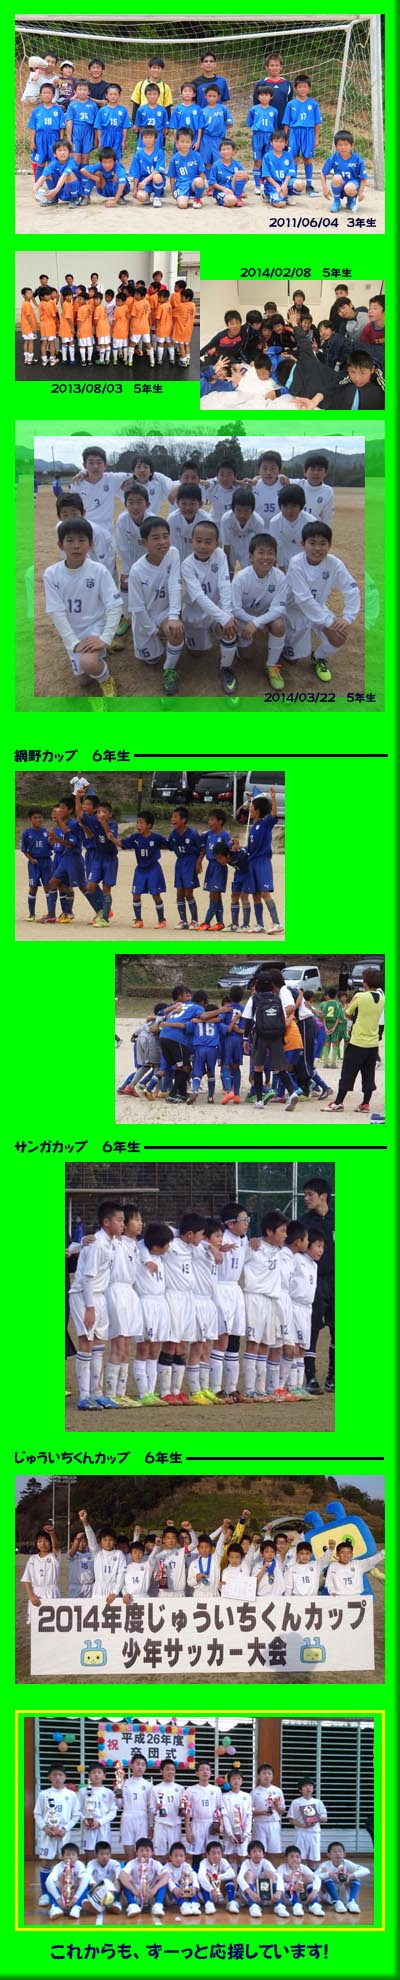 sotudan20150322_04blog